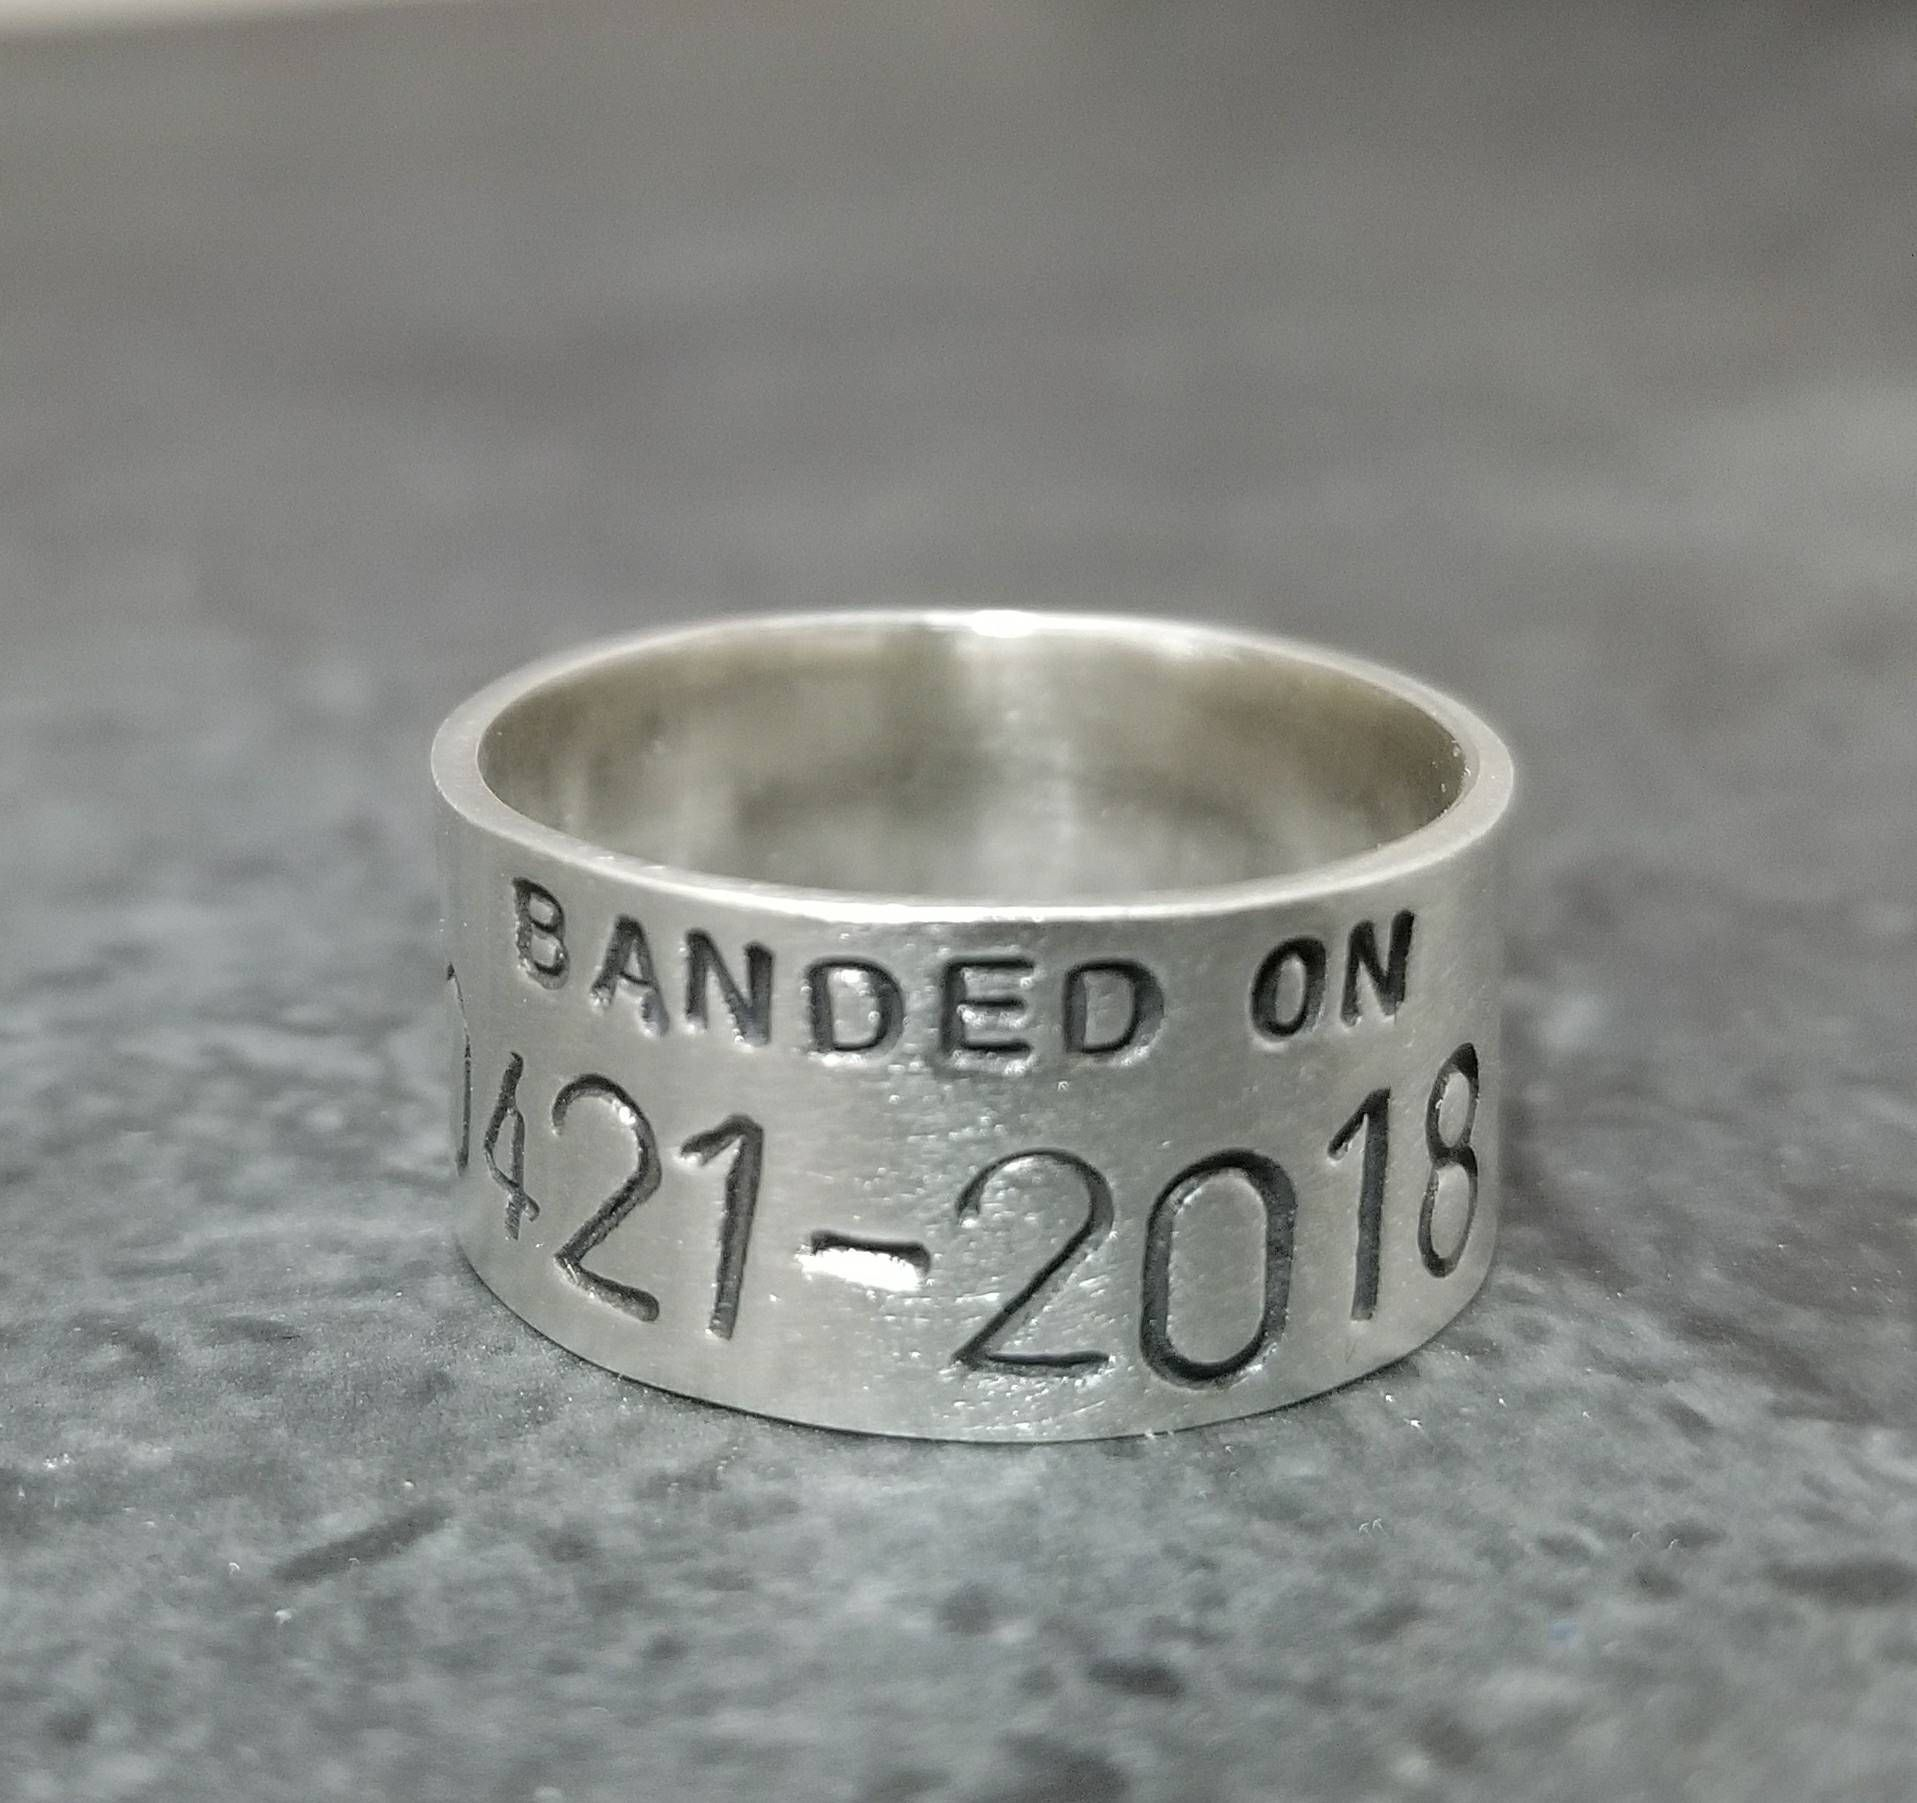 Custom Personalized Duck Band Ring Hand Stamped Wedding Ring Etsy In 2020 Duck Band Ring Wedding Rings Unique Duck Band Wedding Ring